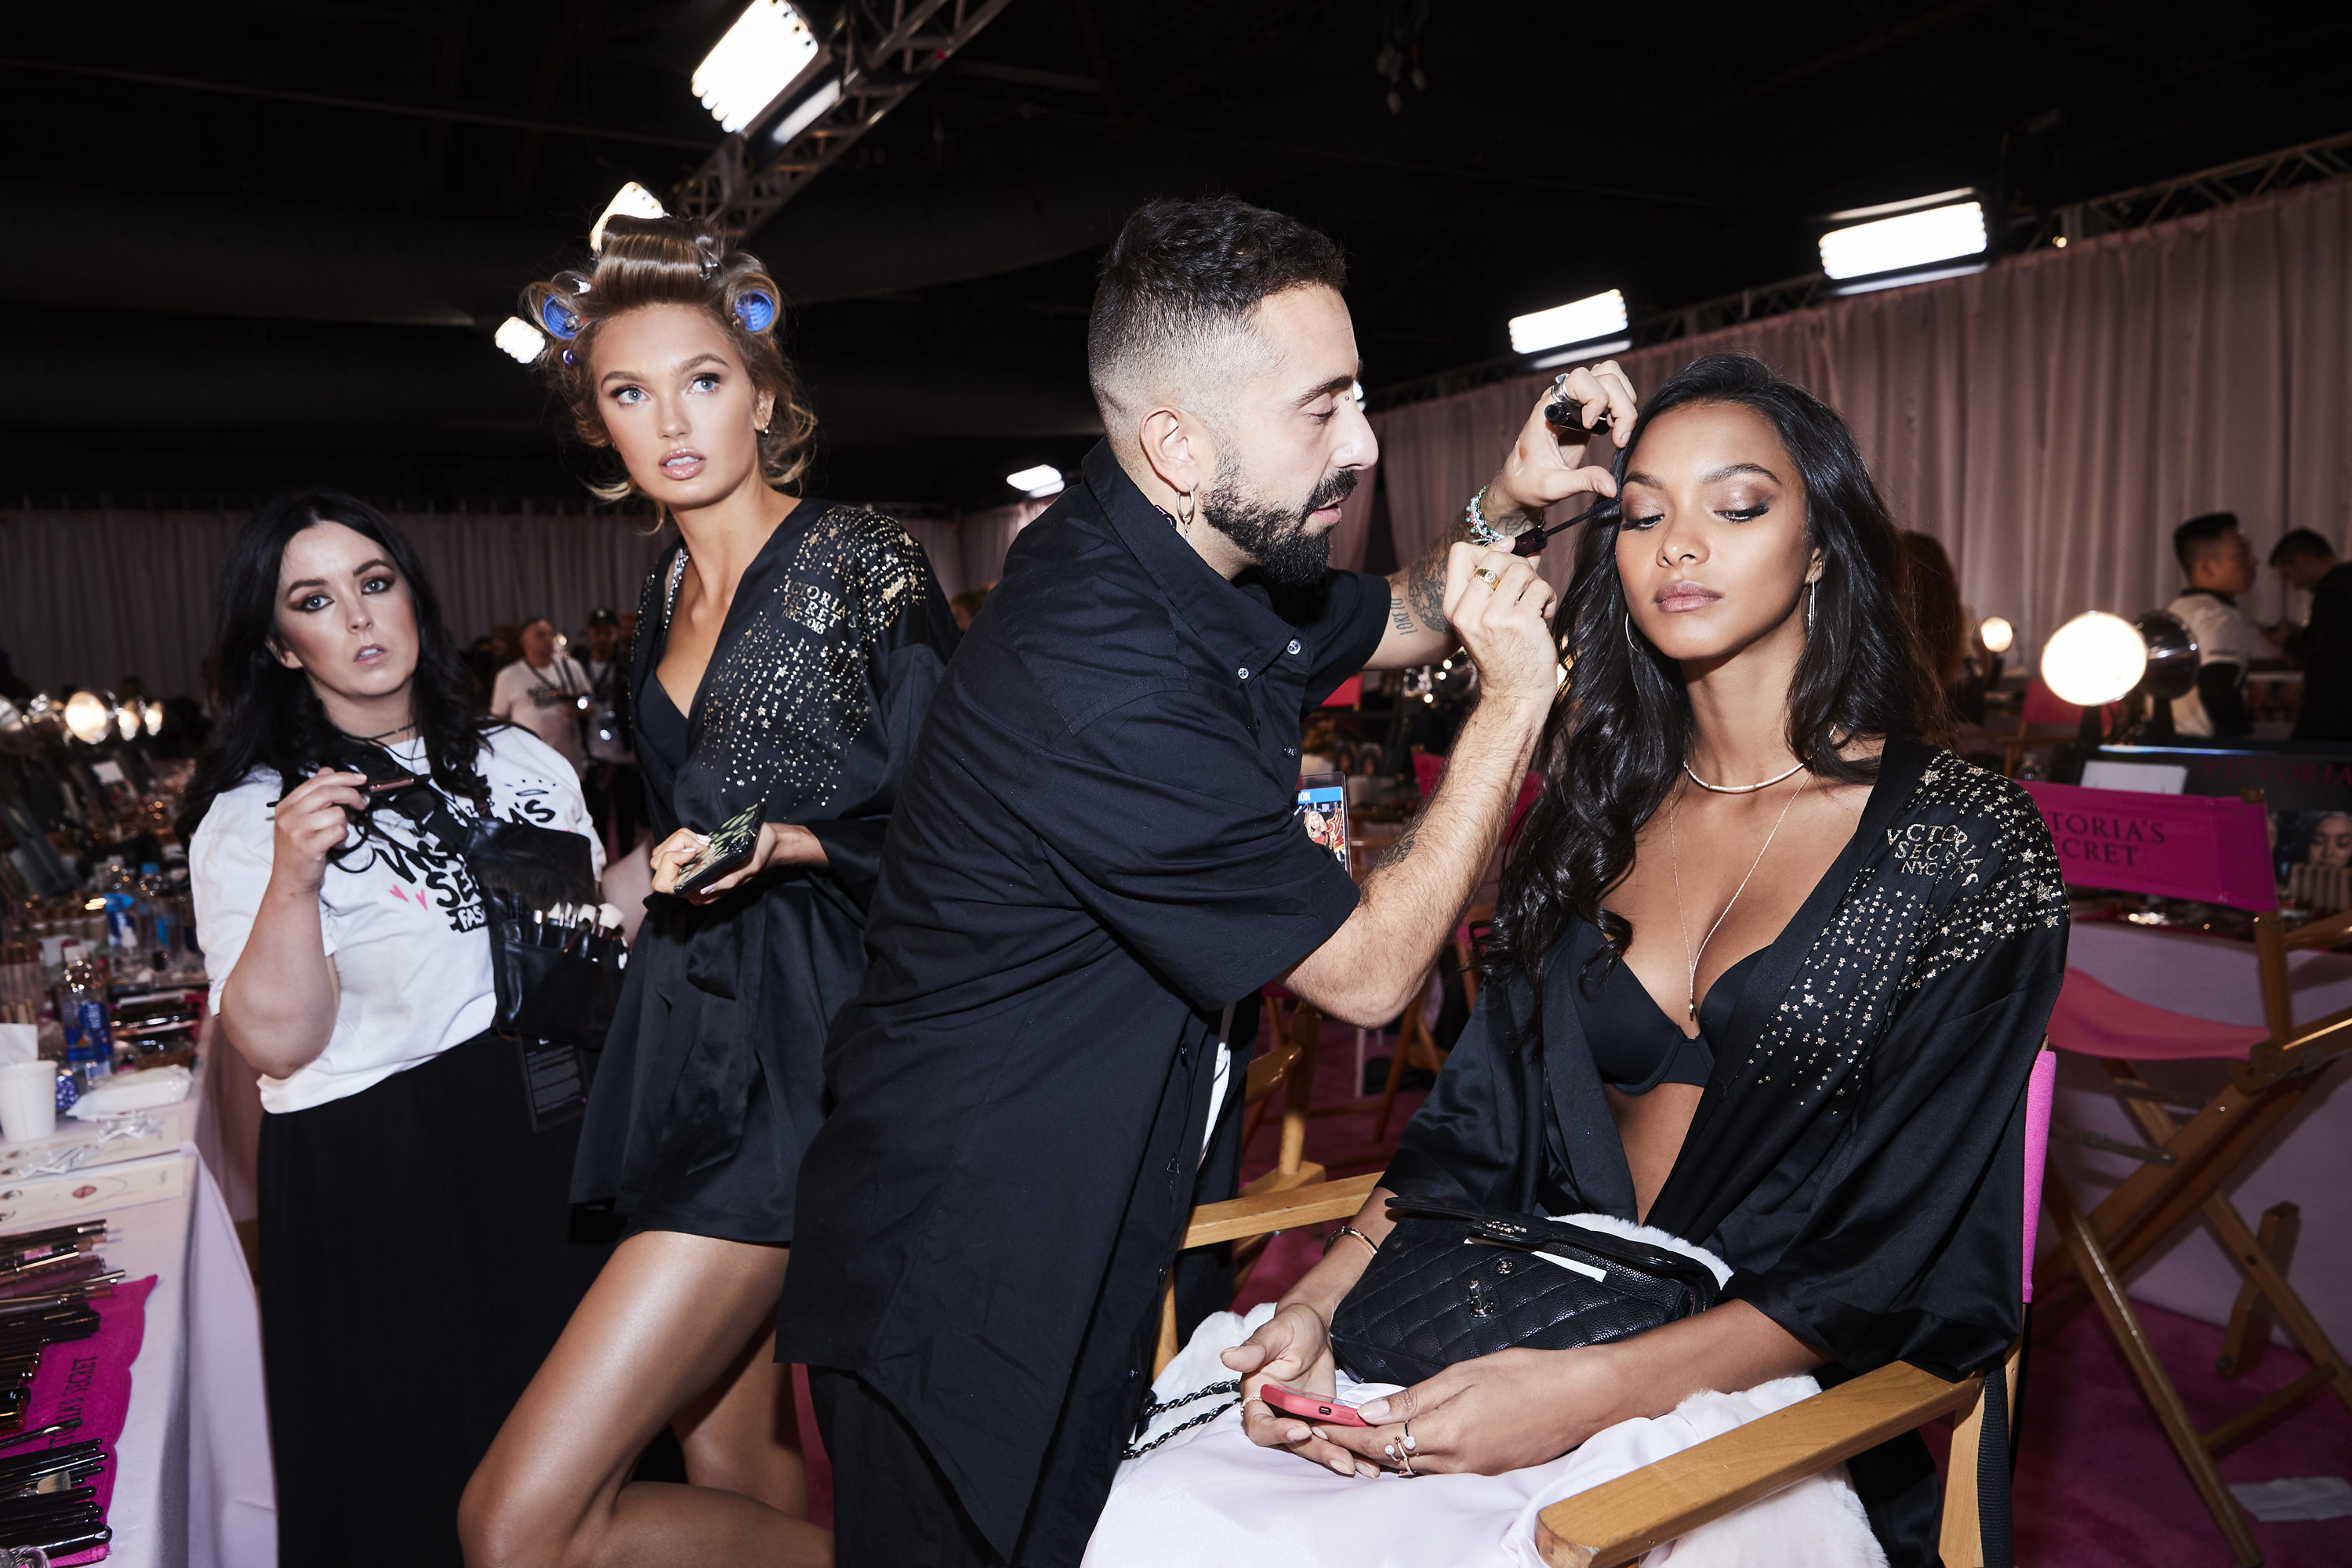 Victoria's Secret Hair & Makeup Beauty Secrets. Victoria's Secret Models Hair & Makeup Tutorials. Beautiful Victoria's Secret Models Modeling Backstage For The Victoria's Secret Fashion Show.